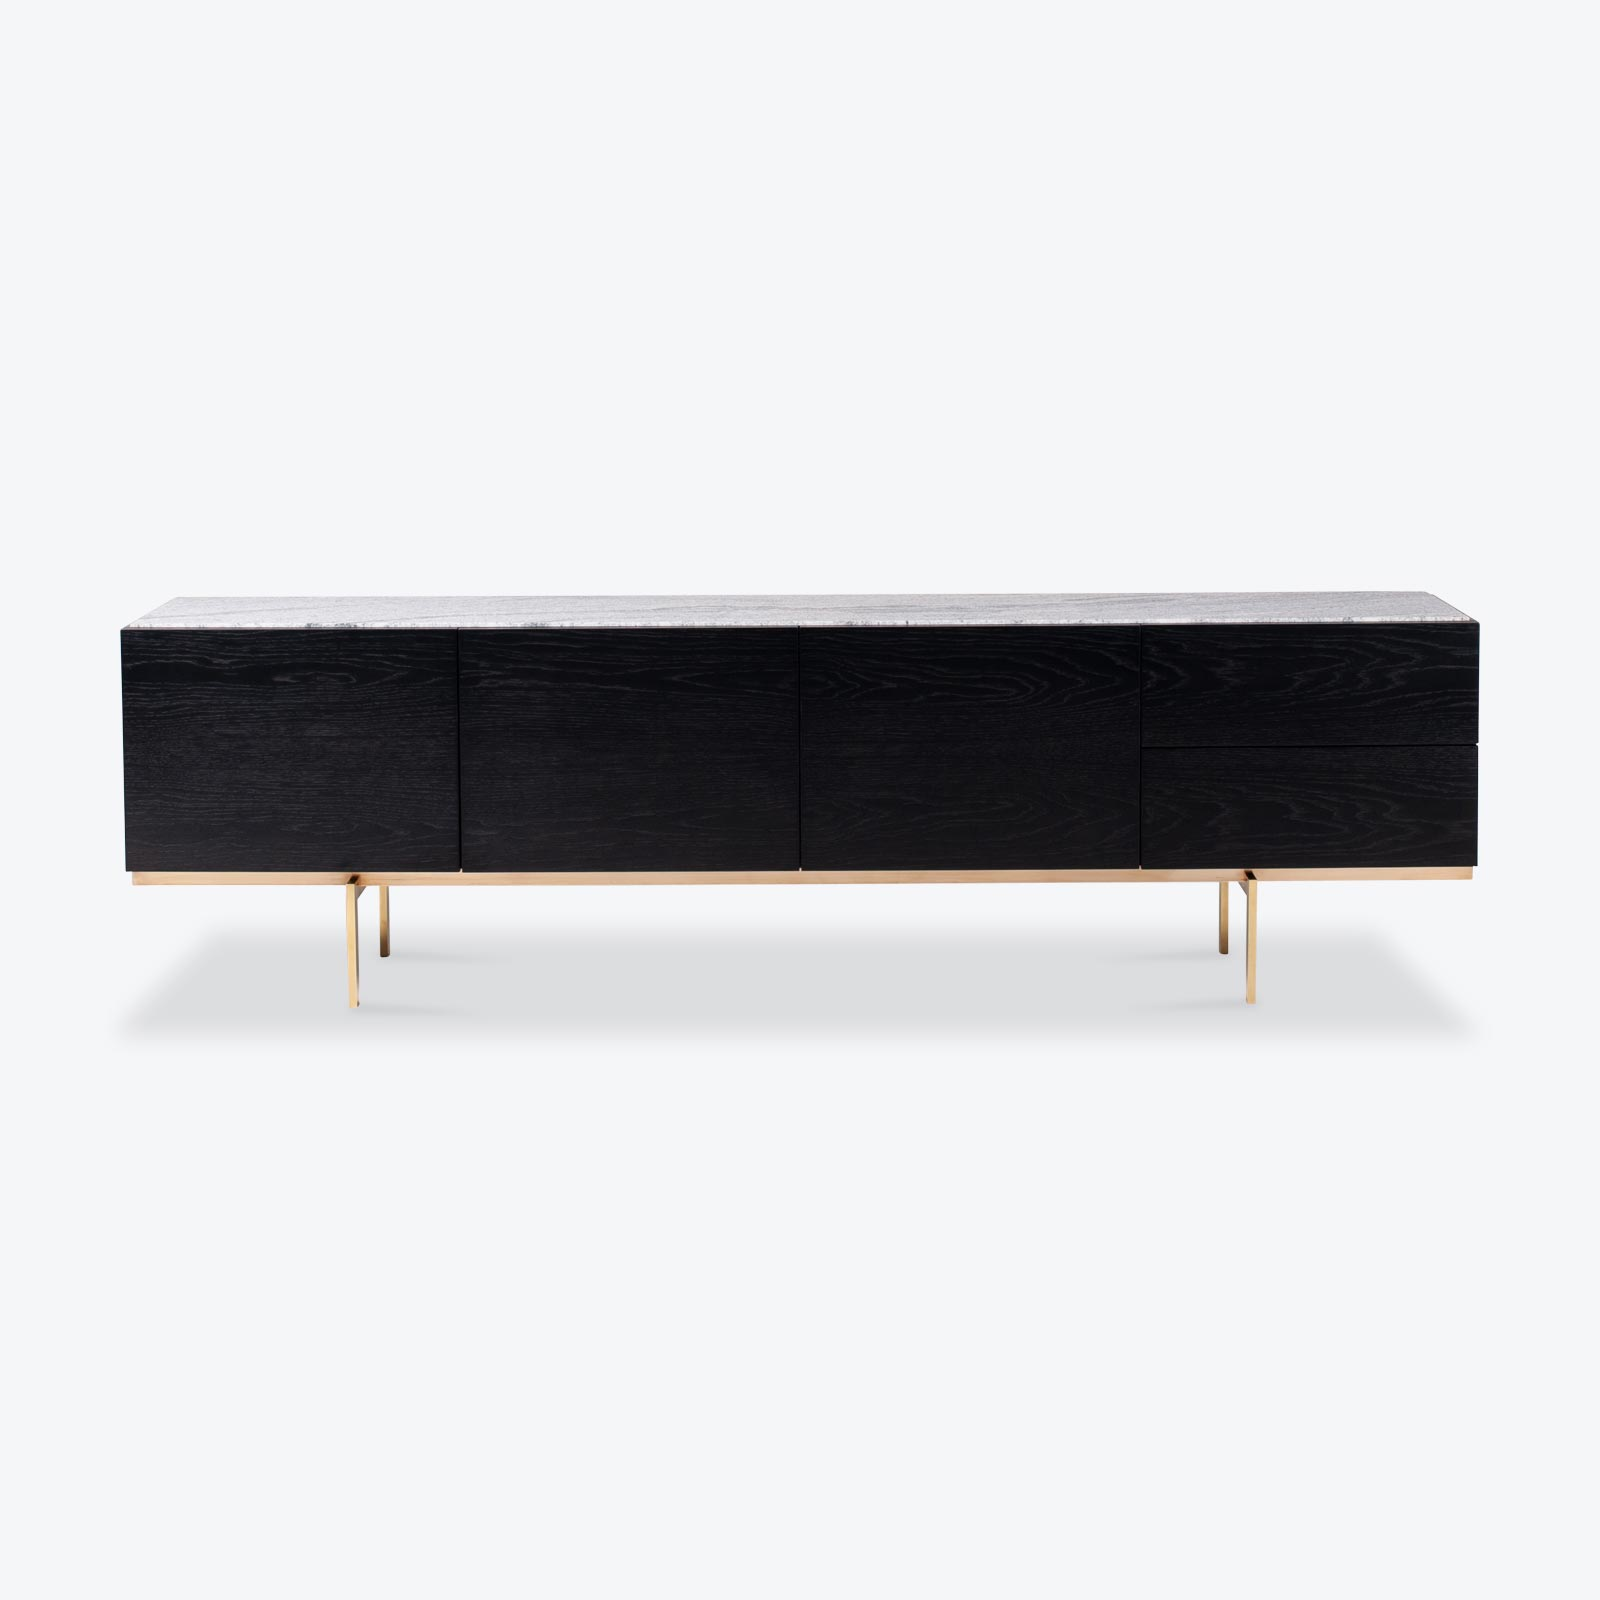 Shoreline Sideboard By Mt Studio For Modern Times 2018 Australia 00